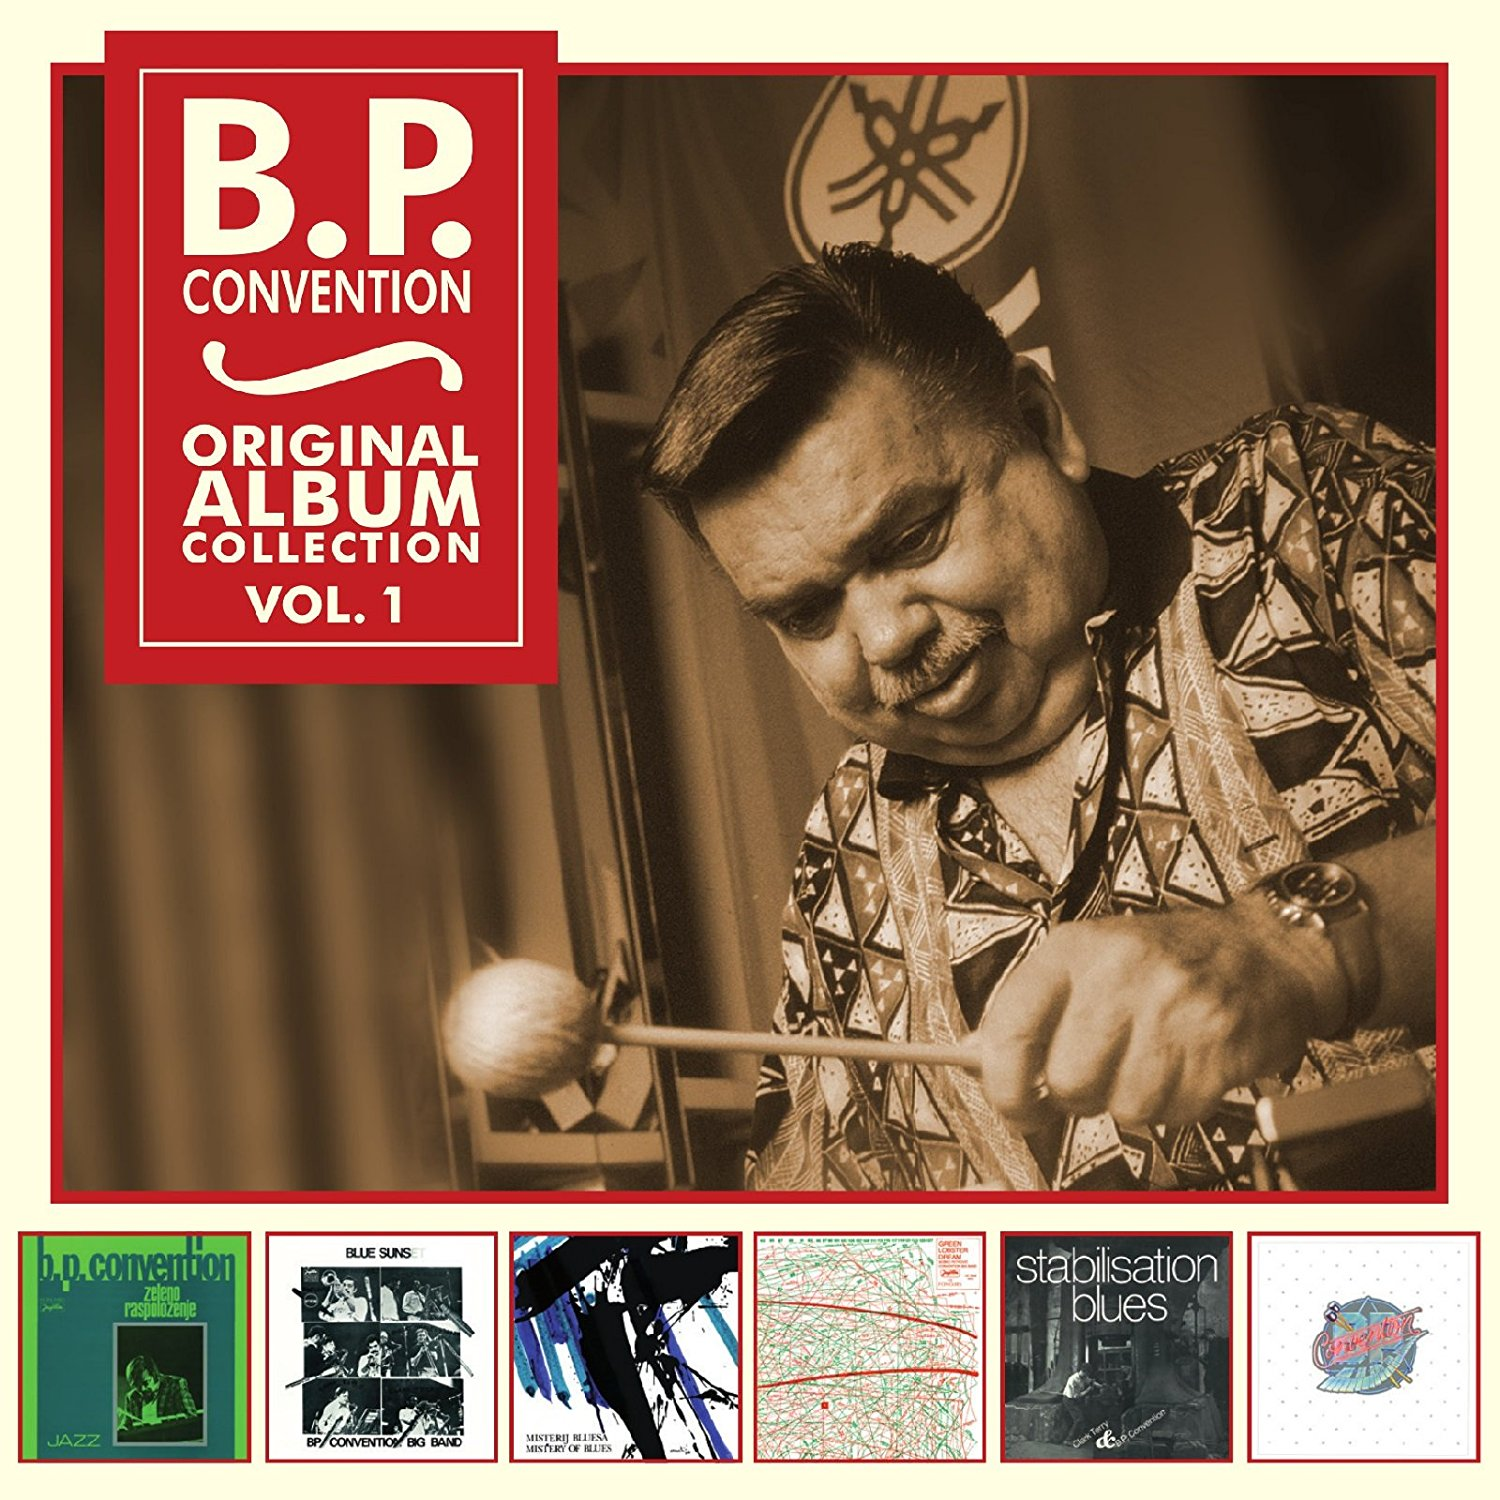 B.P. Convention - Original Album Collection, Vol. 1